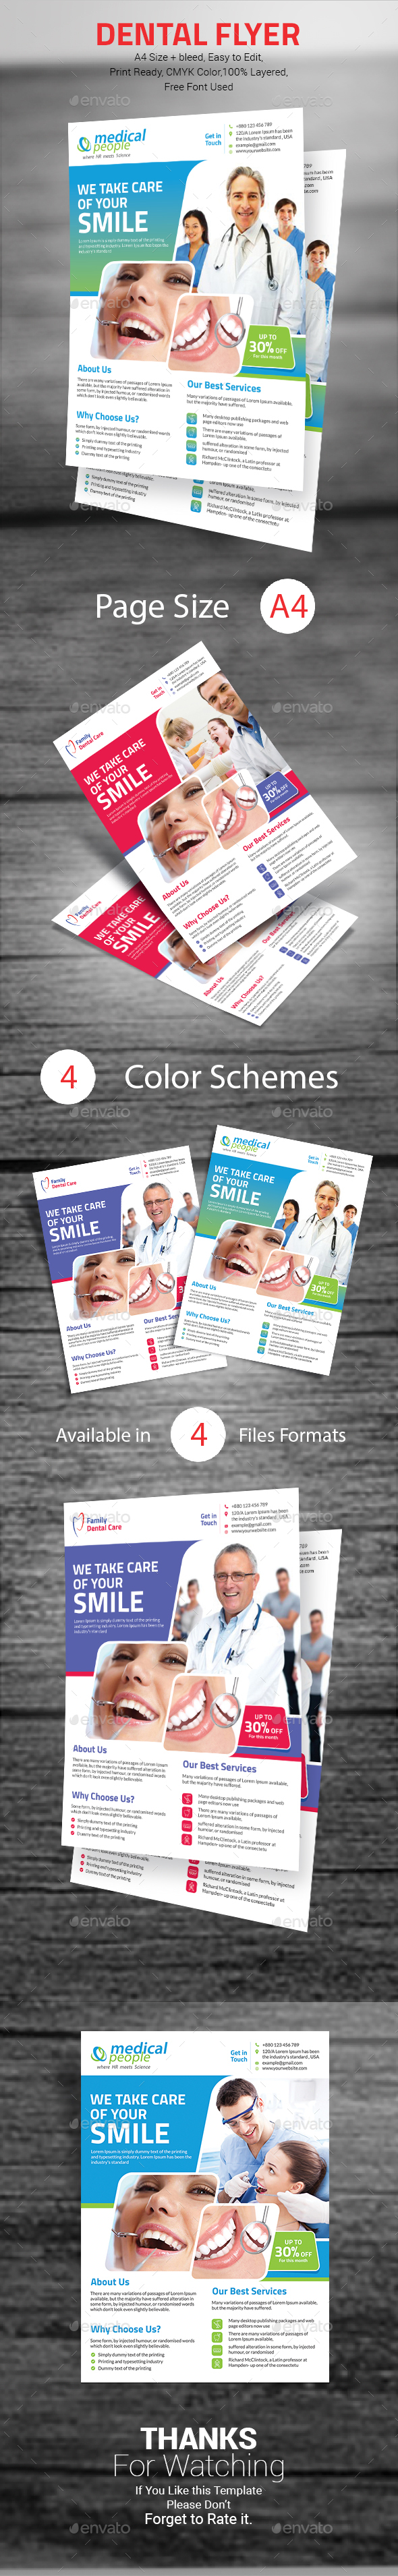 Dental Flyer - Corporate Flyers